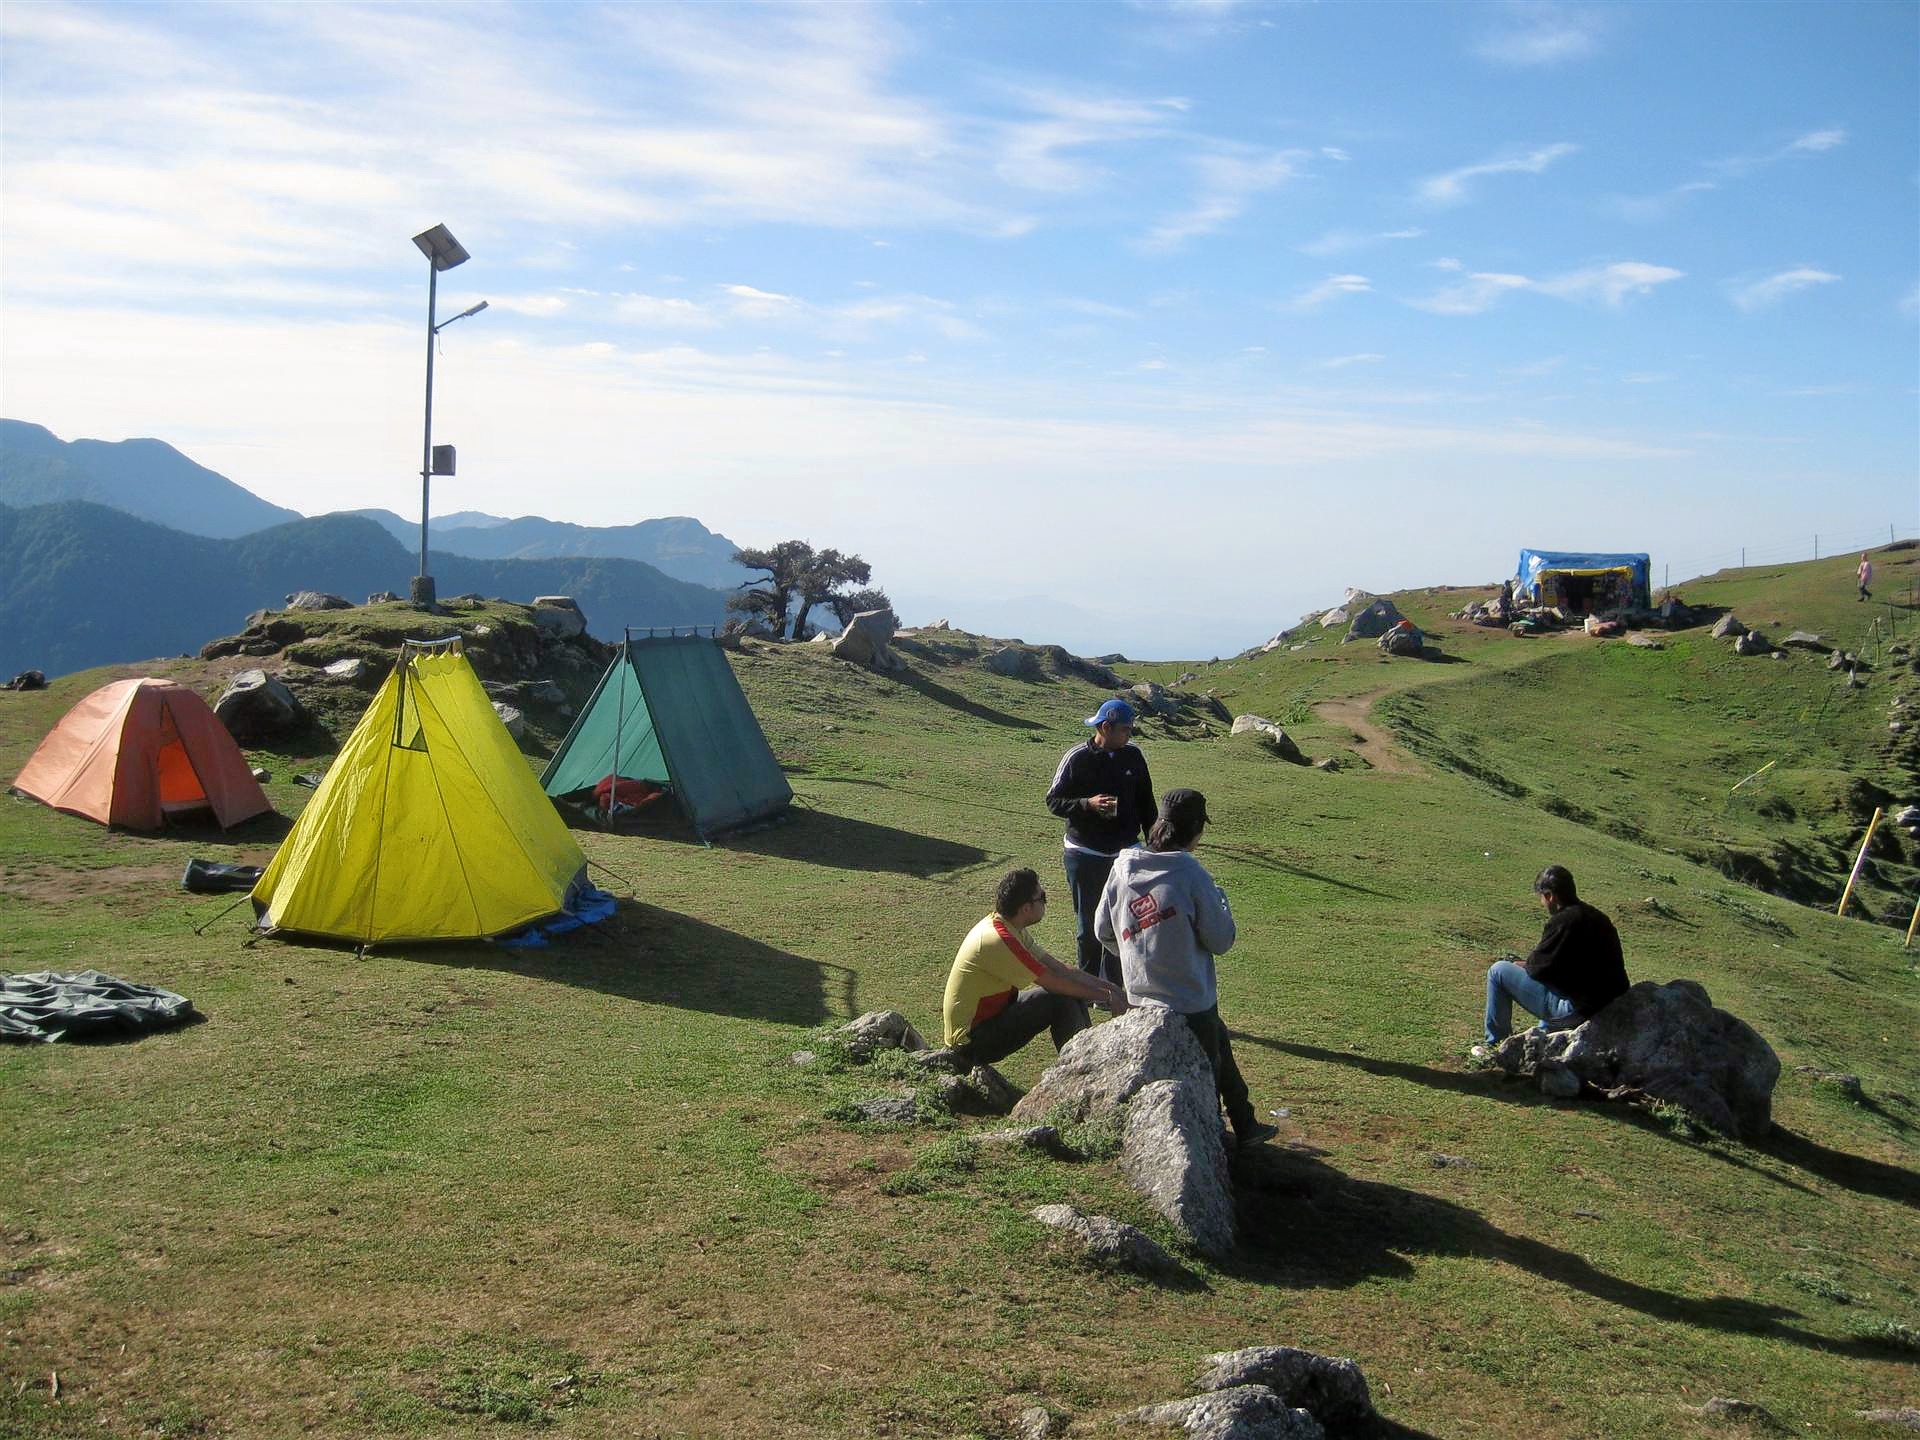 1524209880_camping_site_at_triund__2816260095996_29.jpg